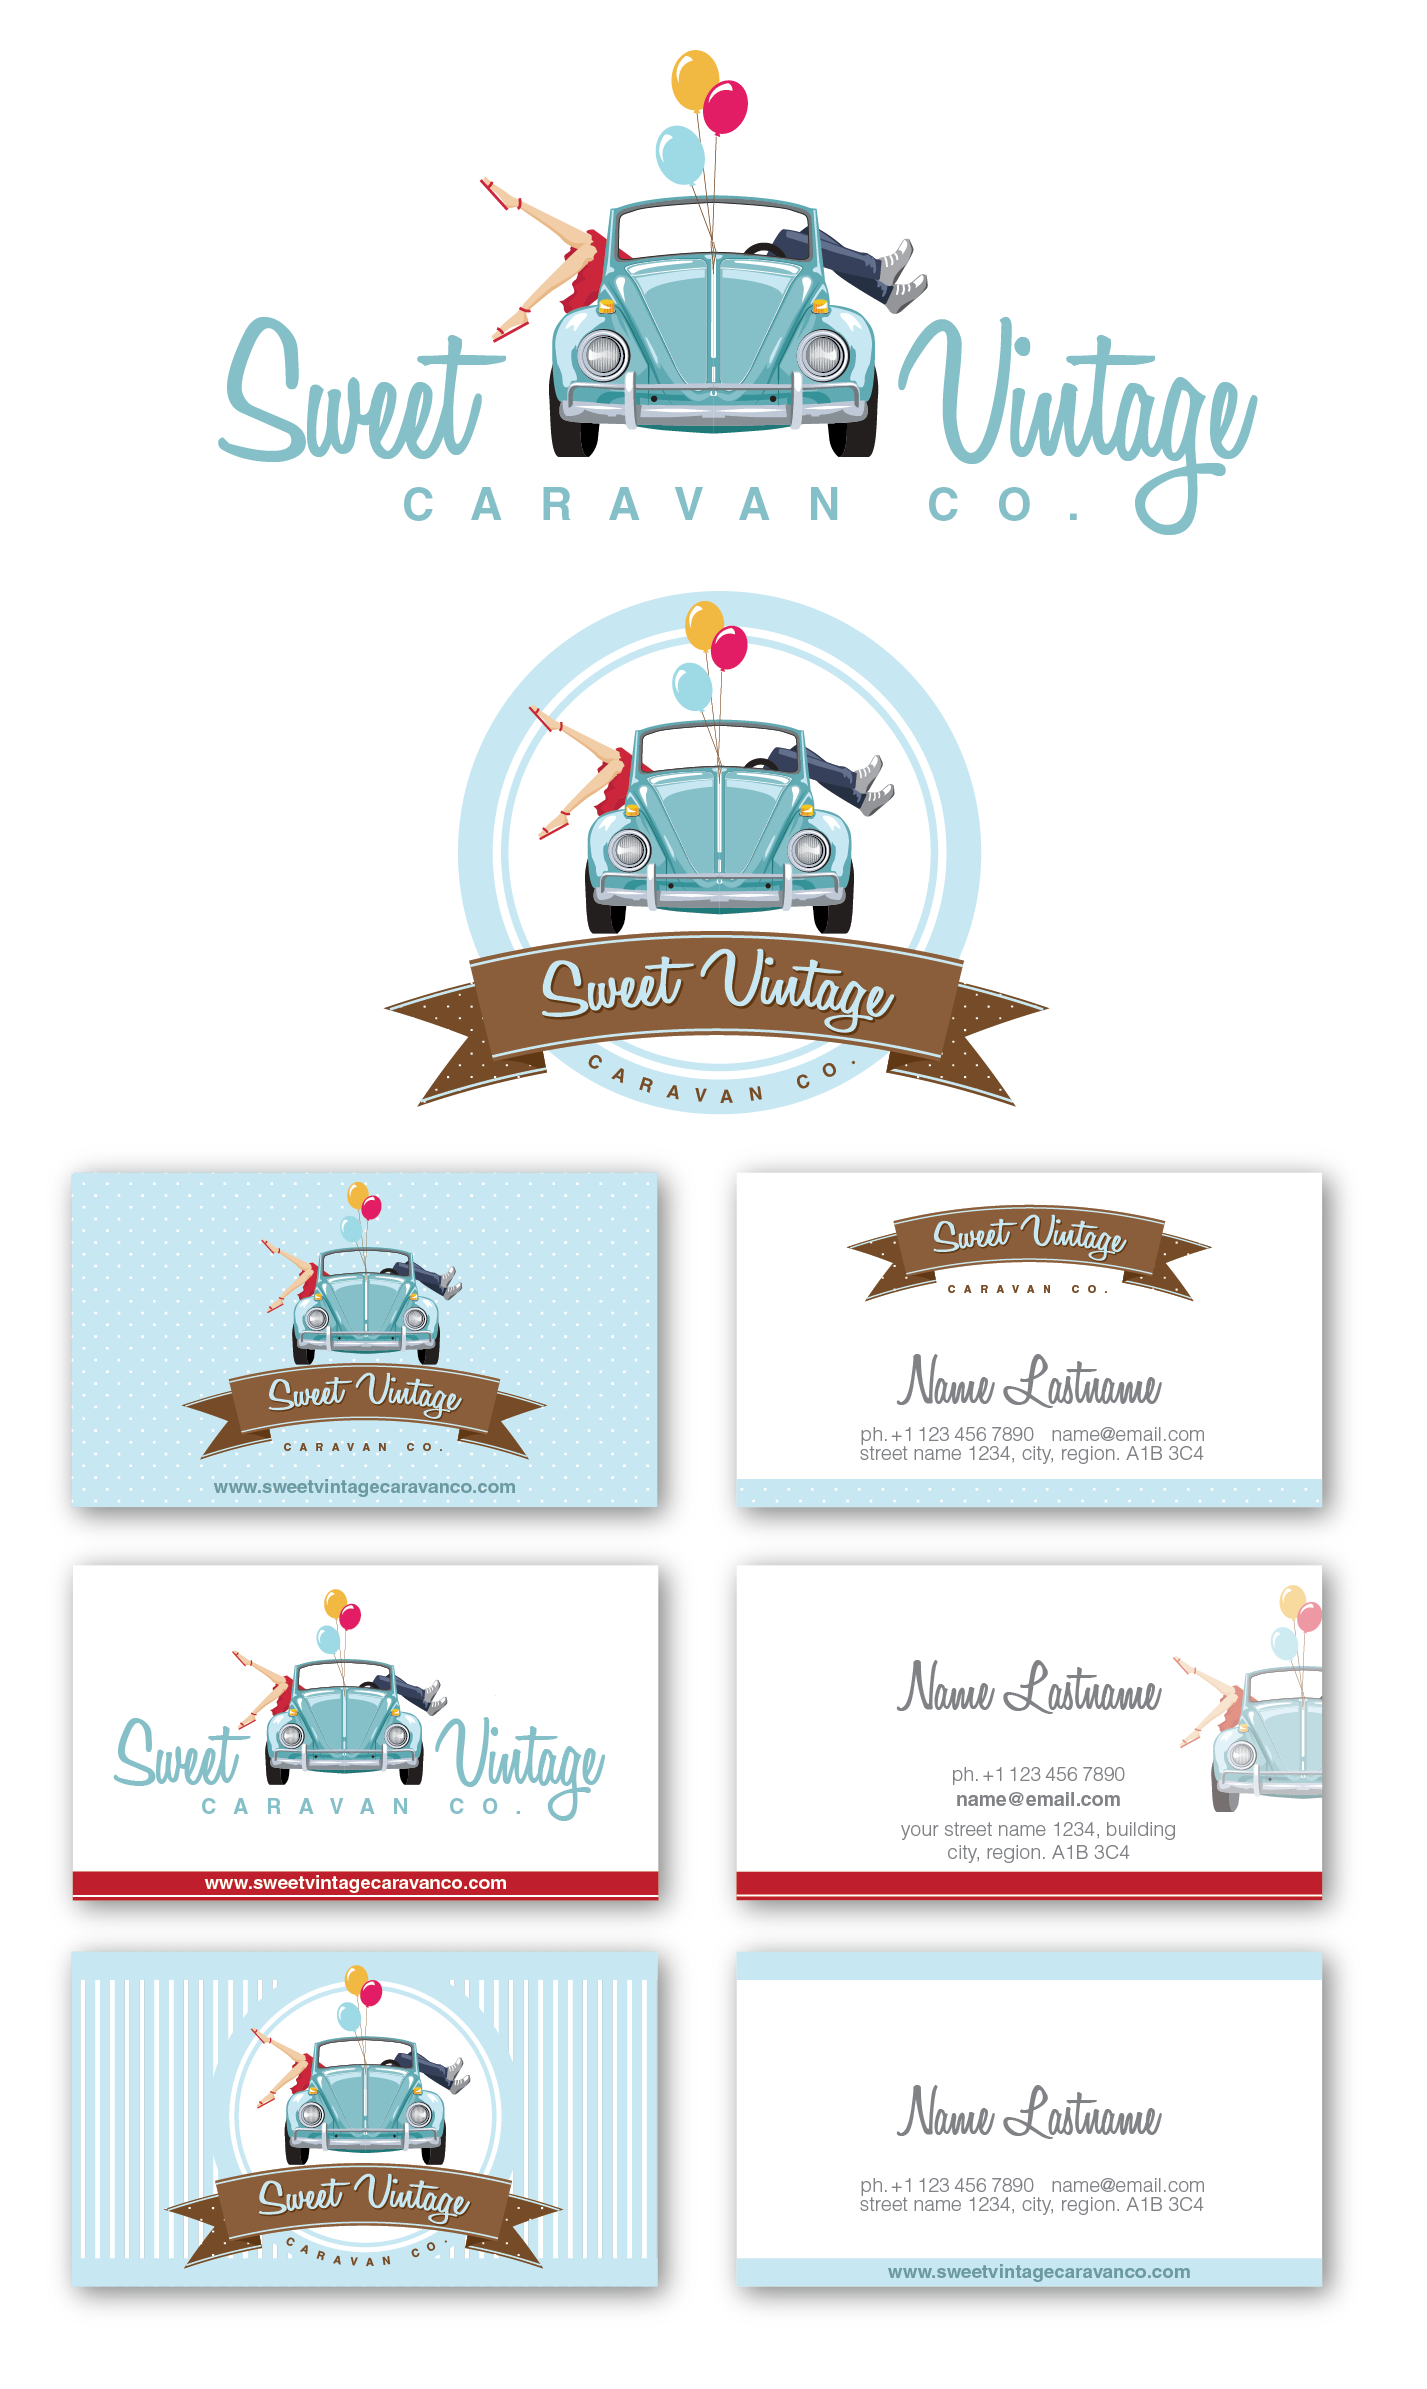 Sweet Vintage Caravan Co. needs a new logo and business card